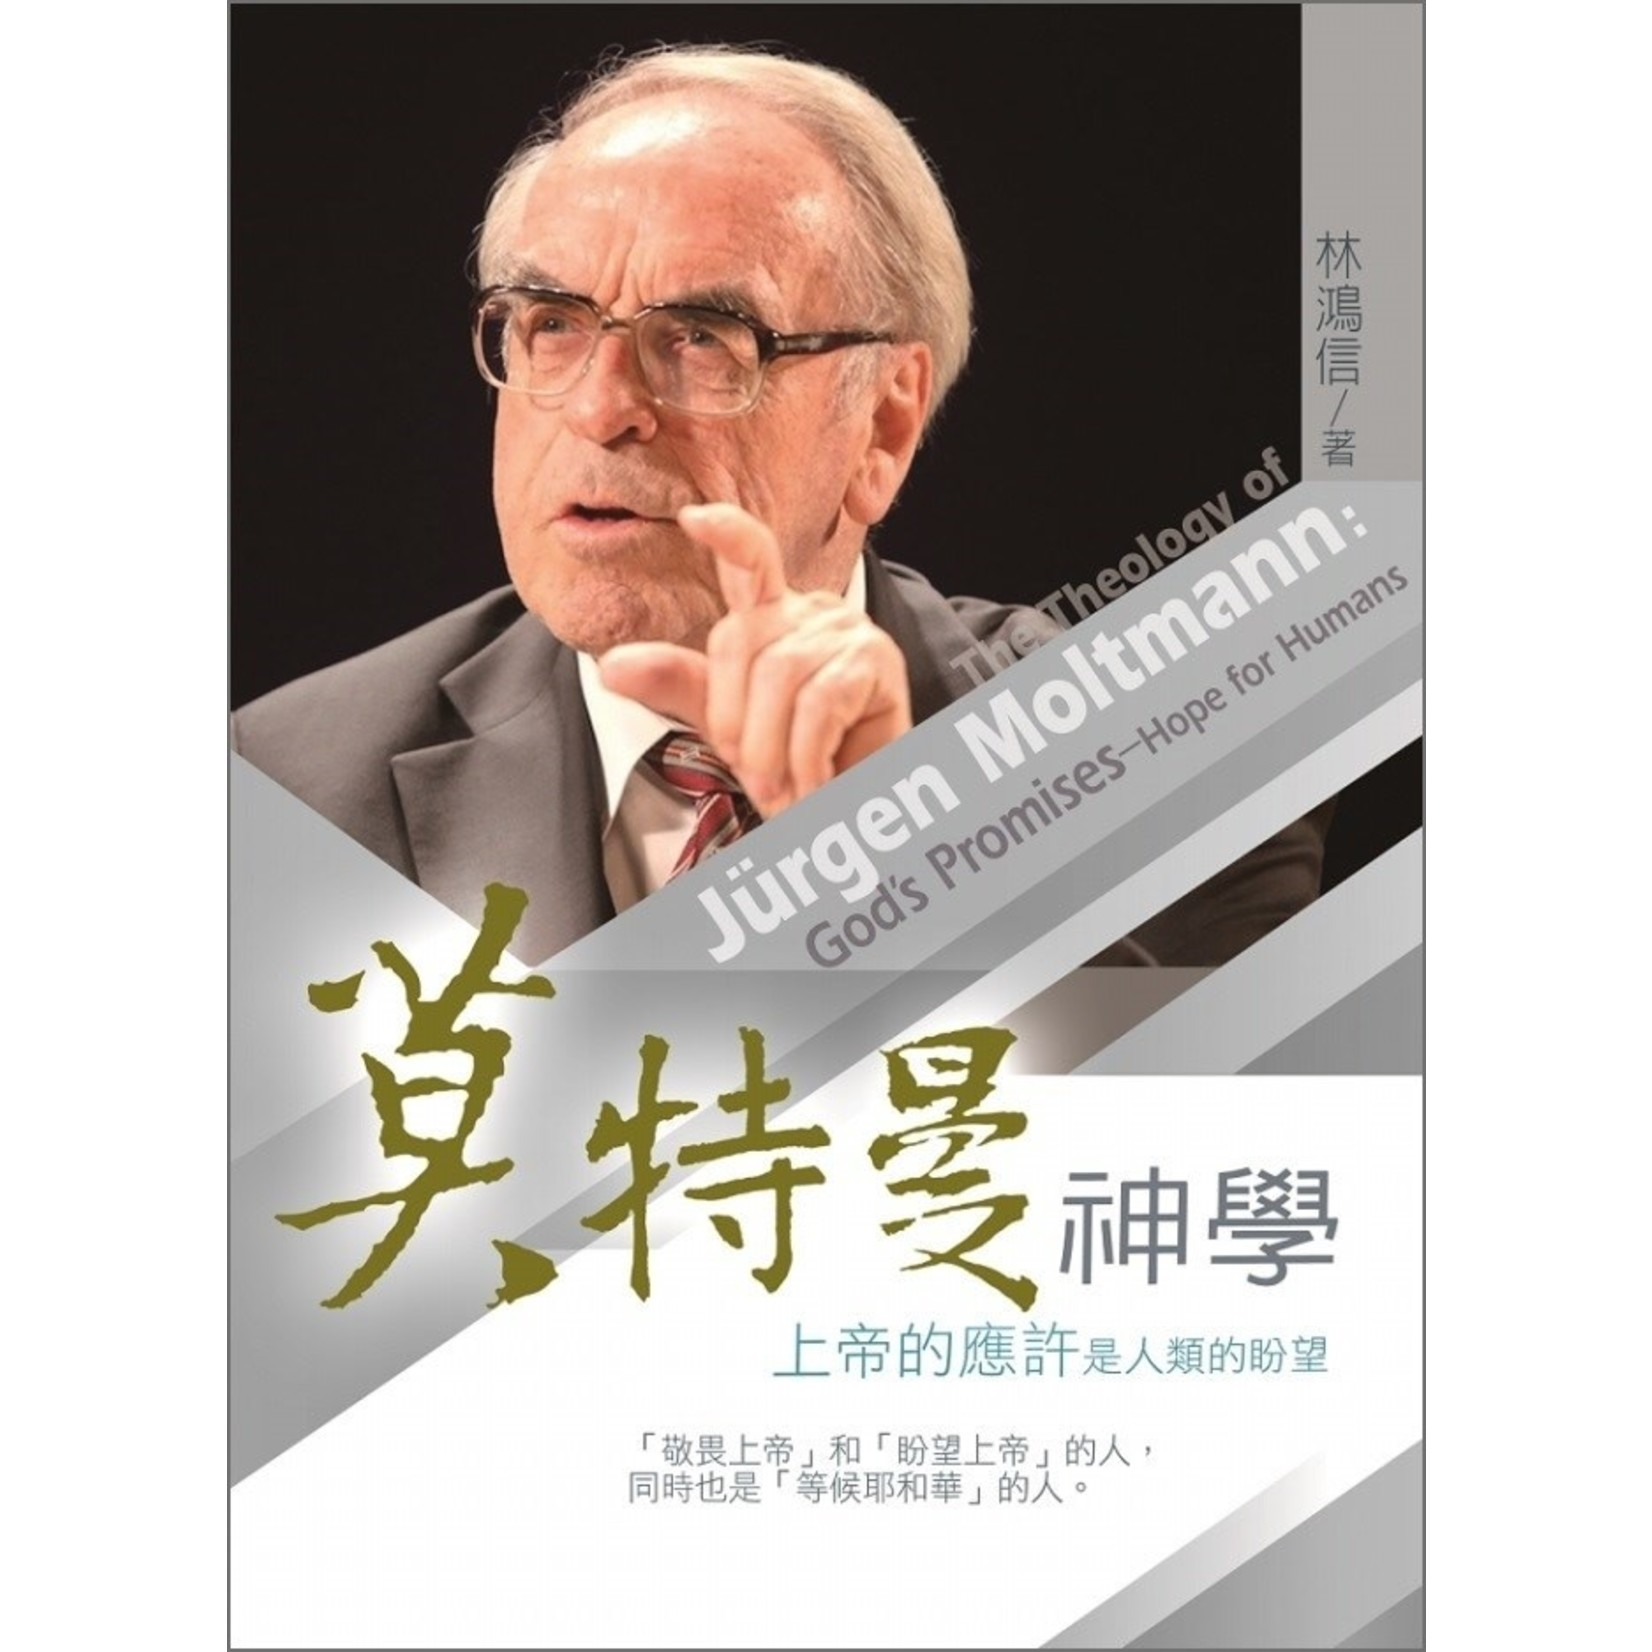 校園書房 Campus Books 莫特曼神學:上帝的應許是人類的盼望(增訂版) The Theology of Jürgen Moltmann: God's Promises—Hope for Humans